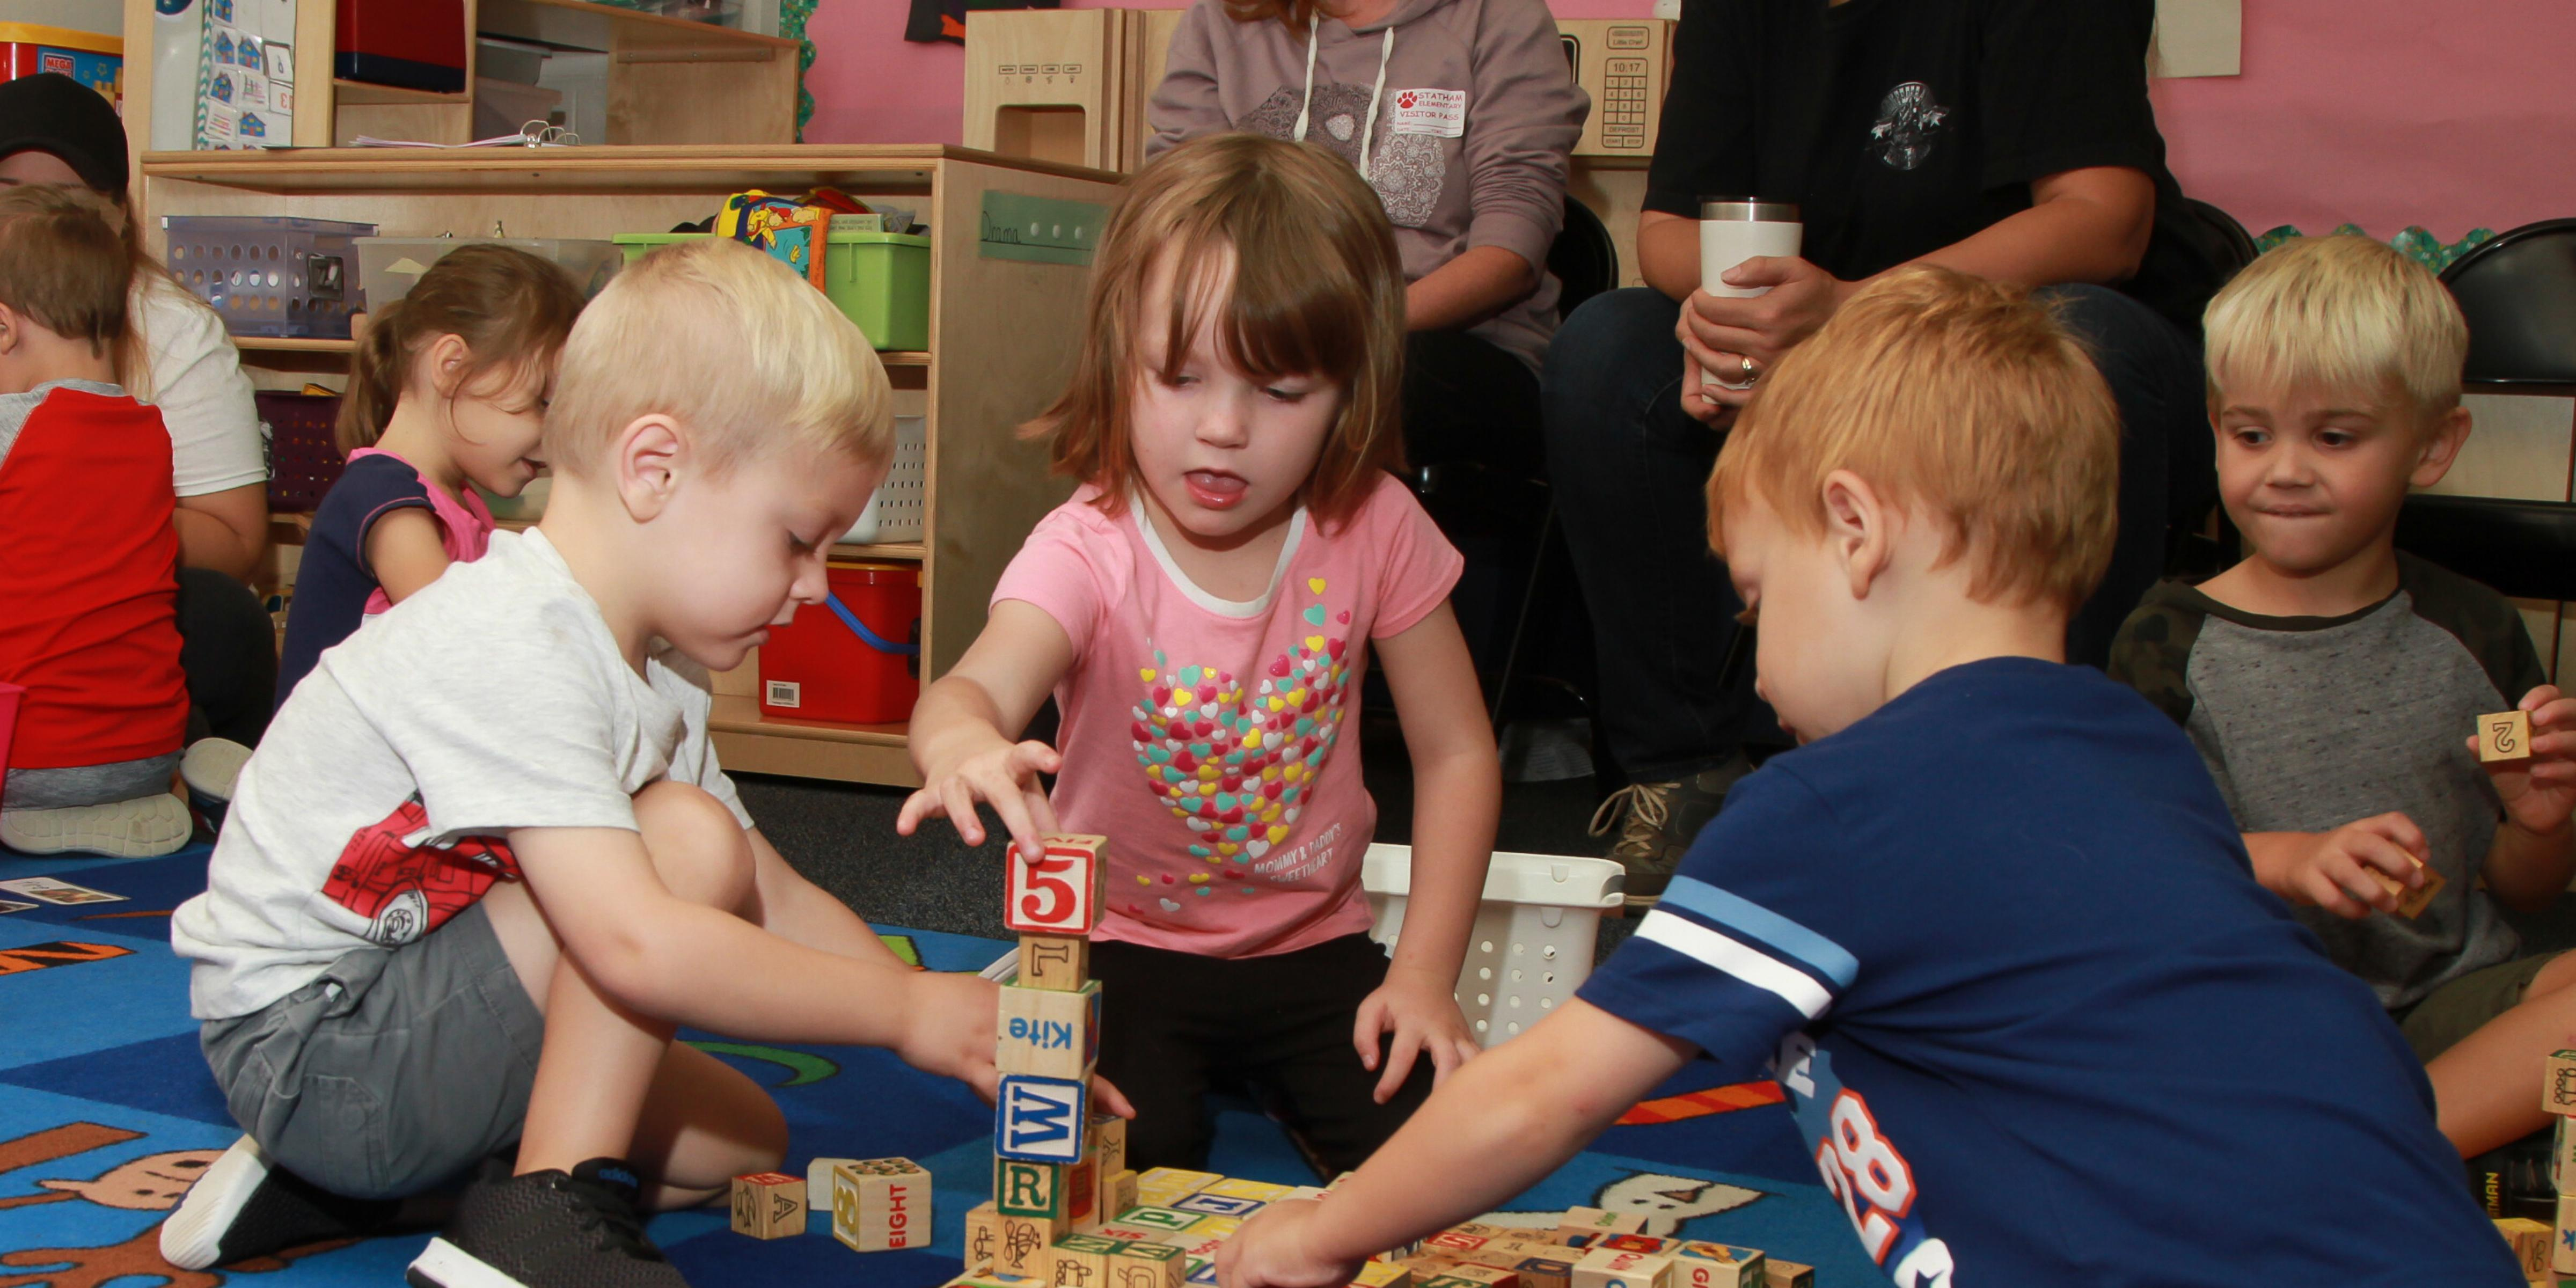 Students playing blocks in a classroom